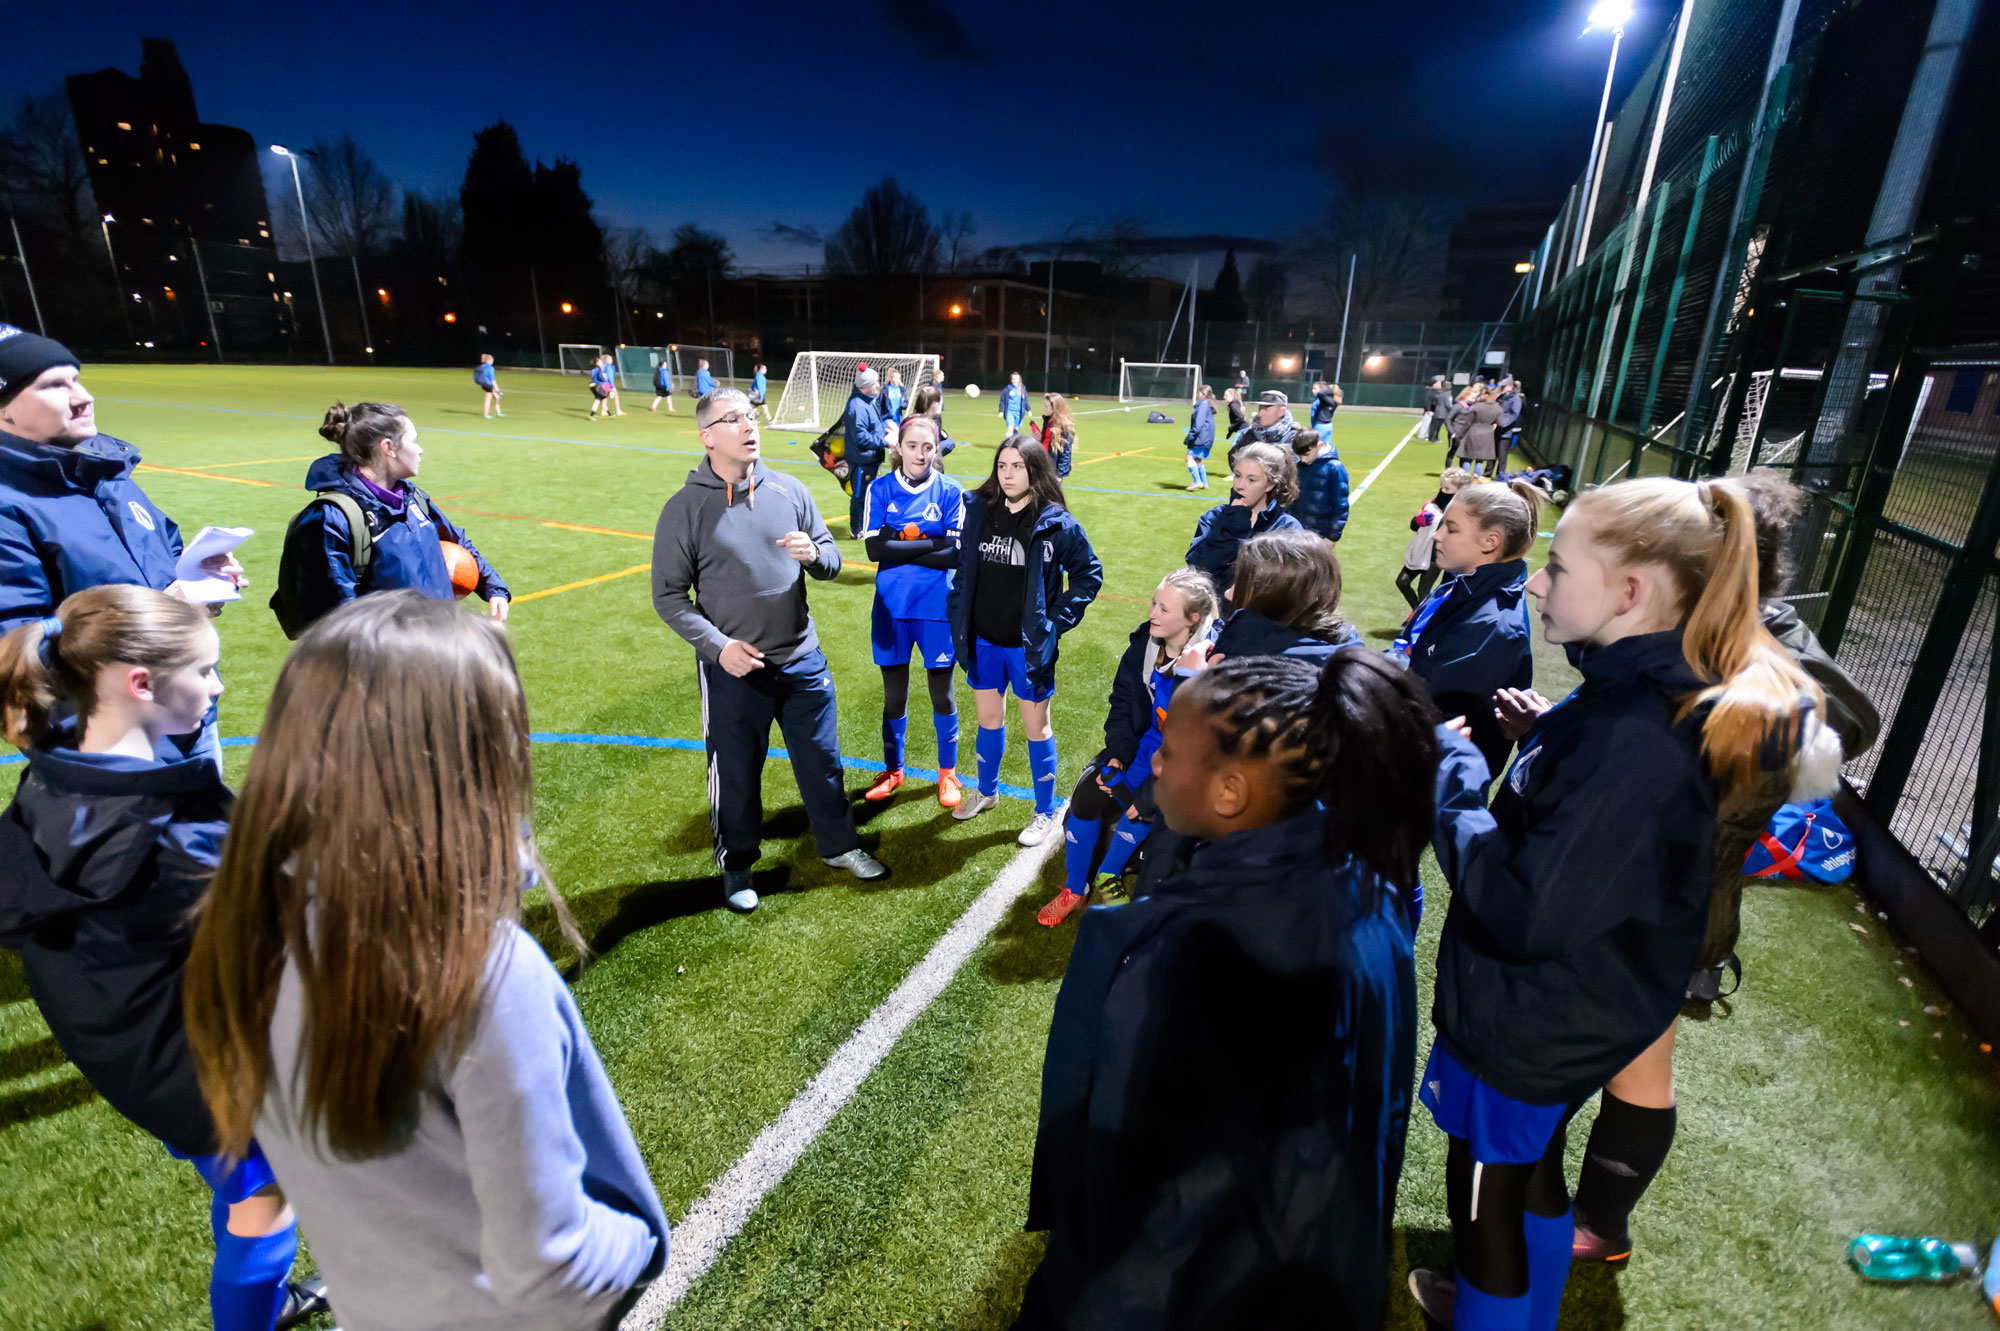 A coach speaks to players ahead of a girls' football session